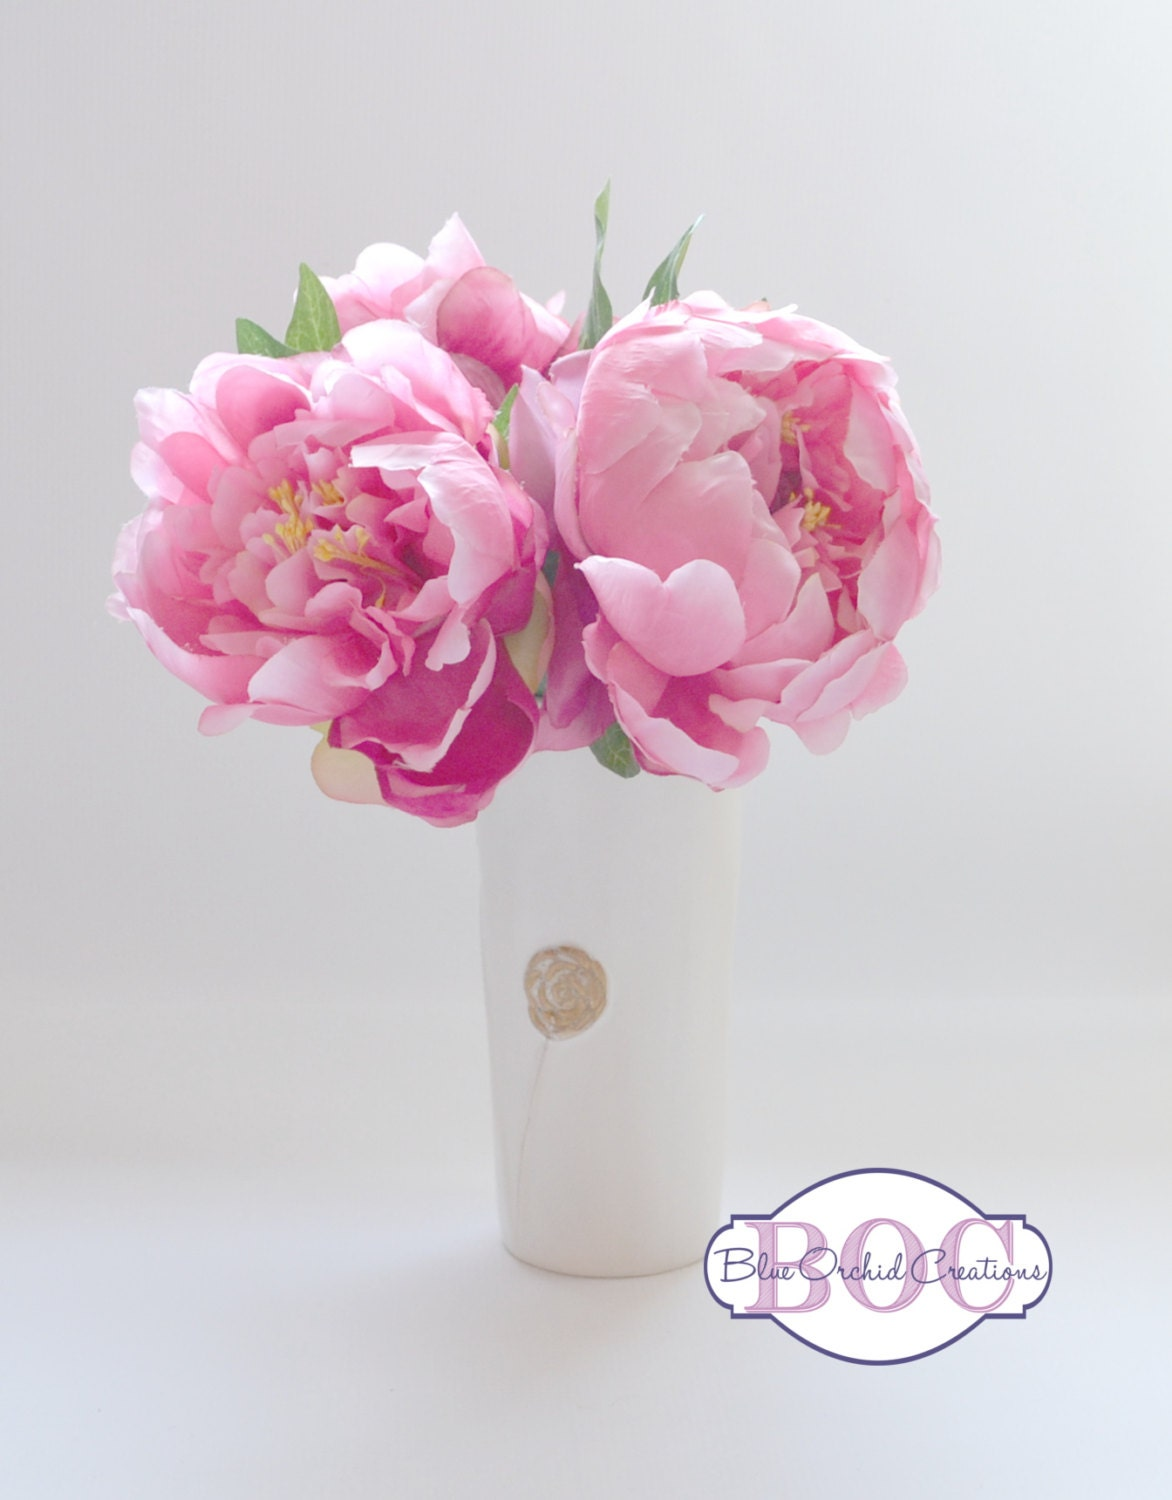 White peony bouquet wedding bouquet small bouquet small pink peony bouquet pink wedding flowers wedding flowers wedding bouquet small bouquet dhlflorist Images